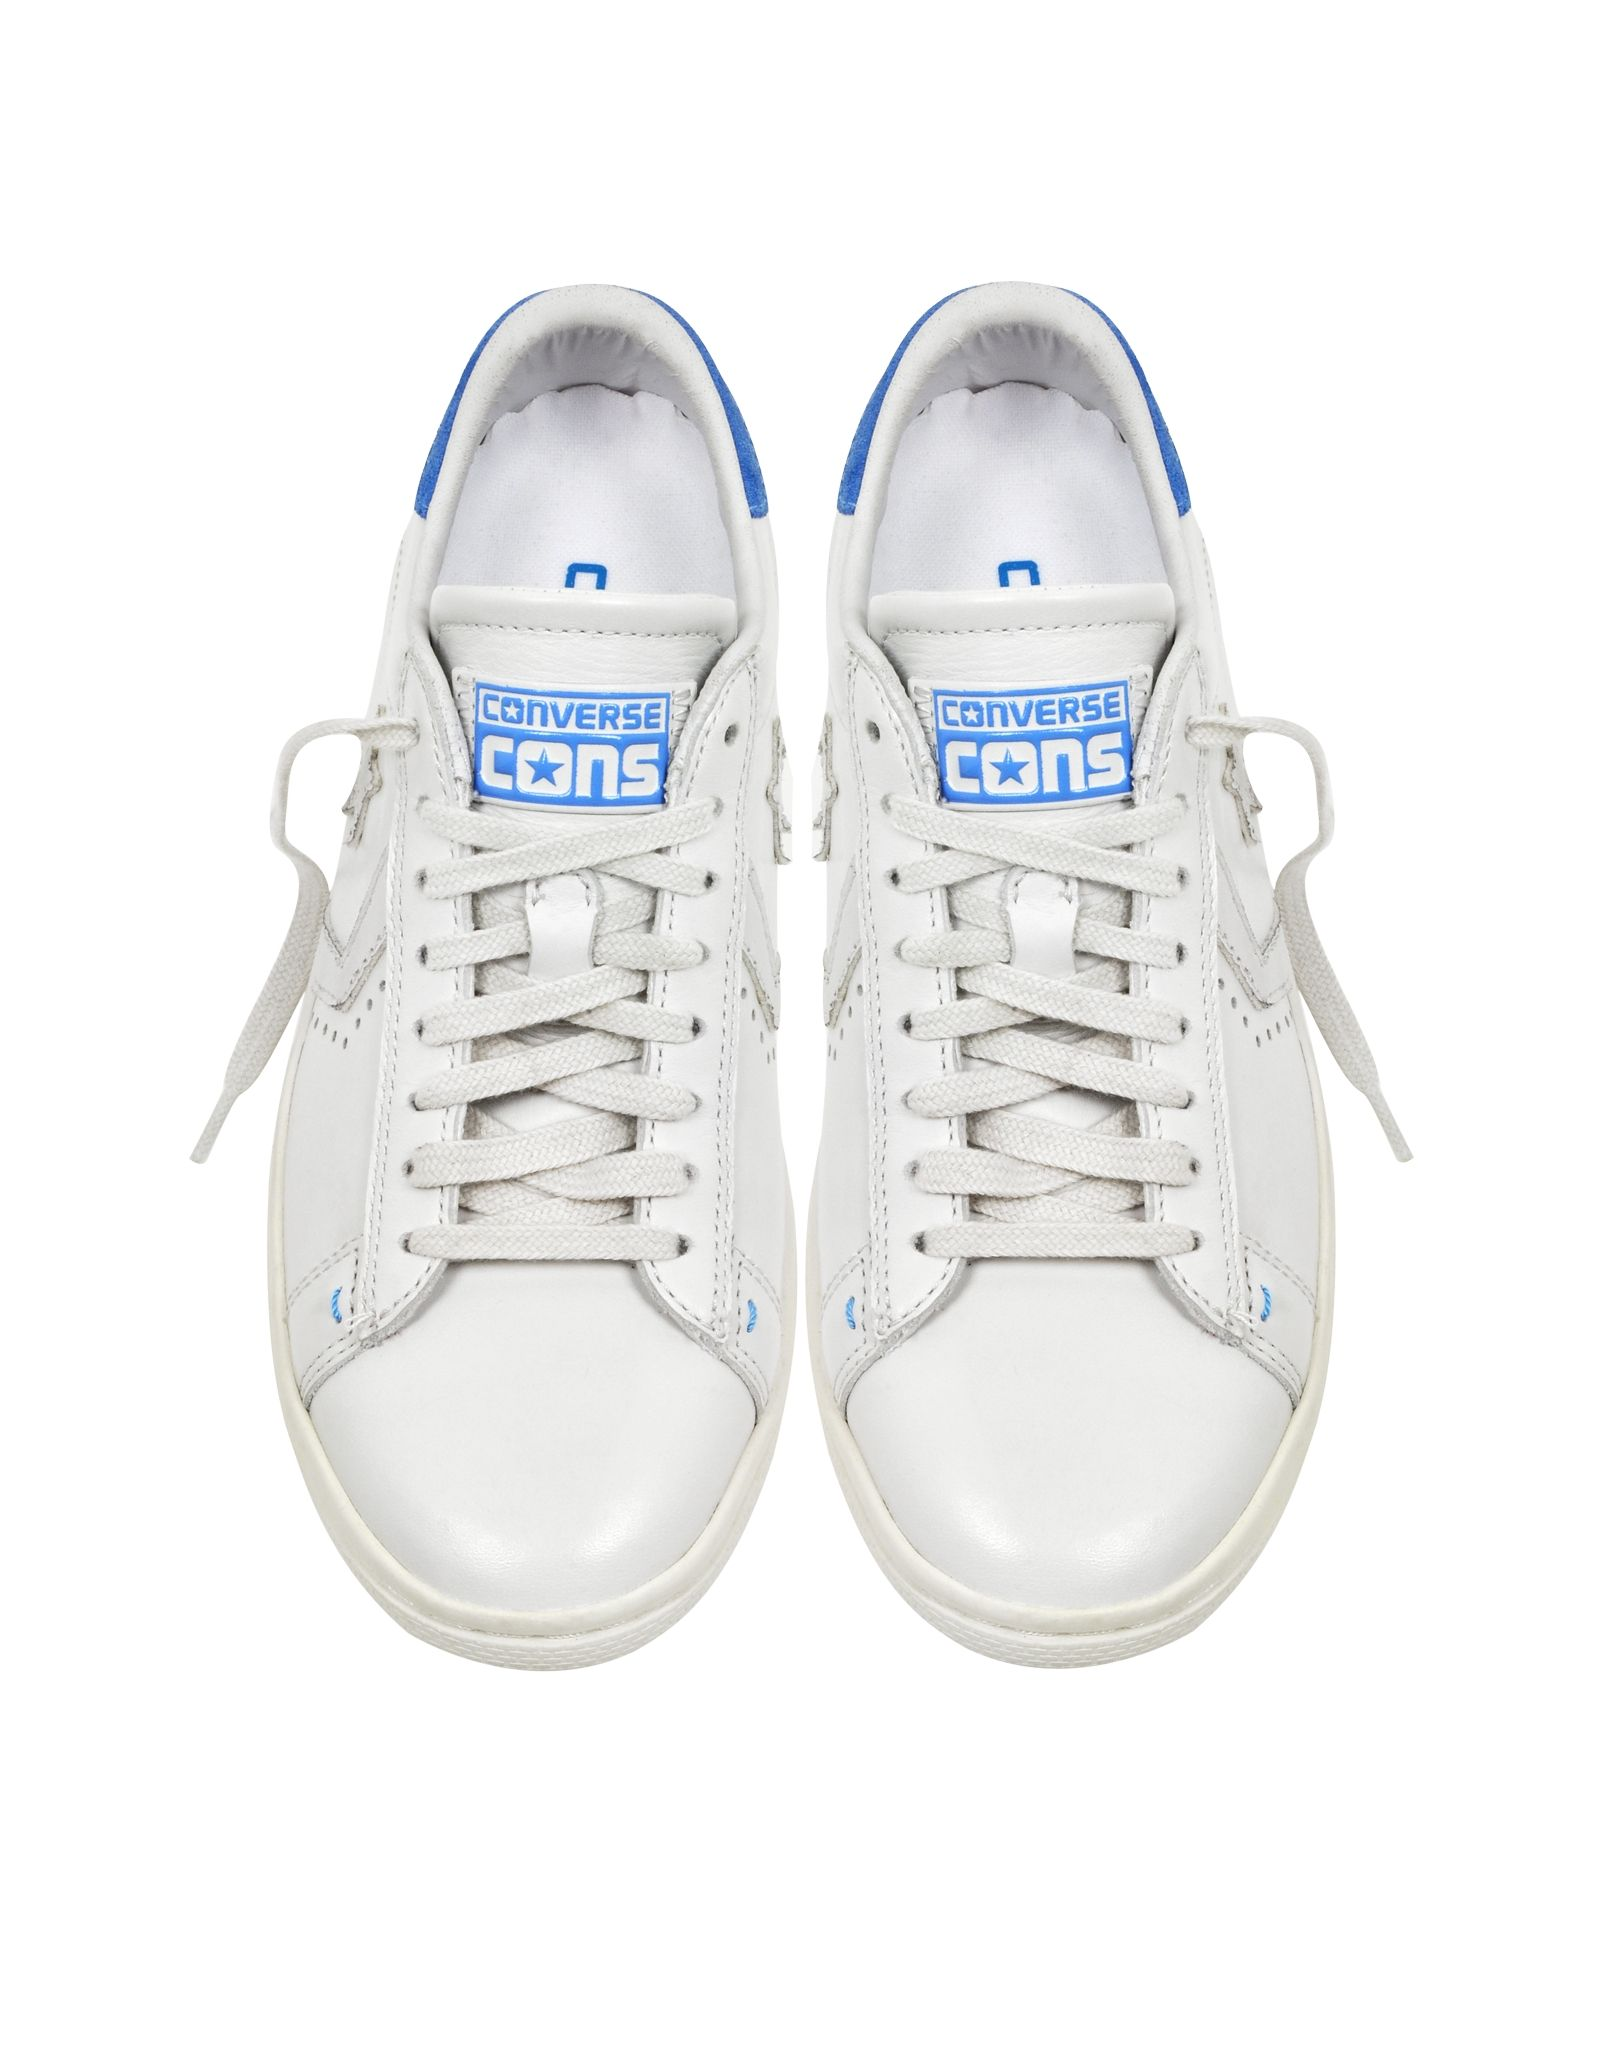 aa233642f267 ... discount code for converse limited edition cons pro leather lp ox white  dust and light blue